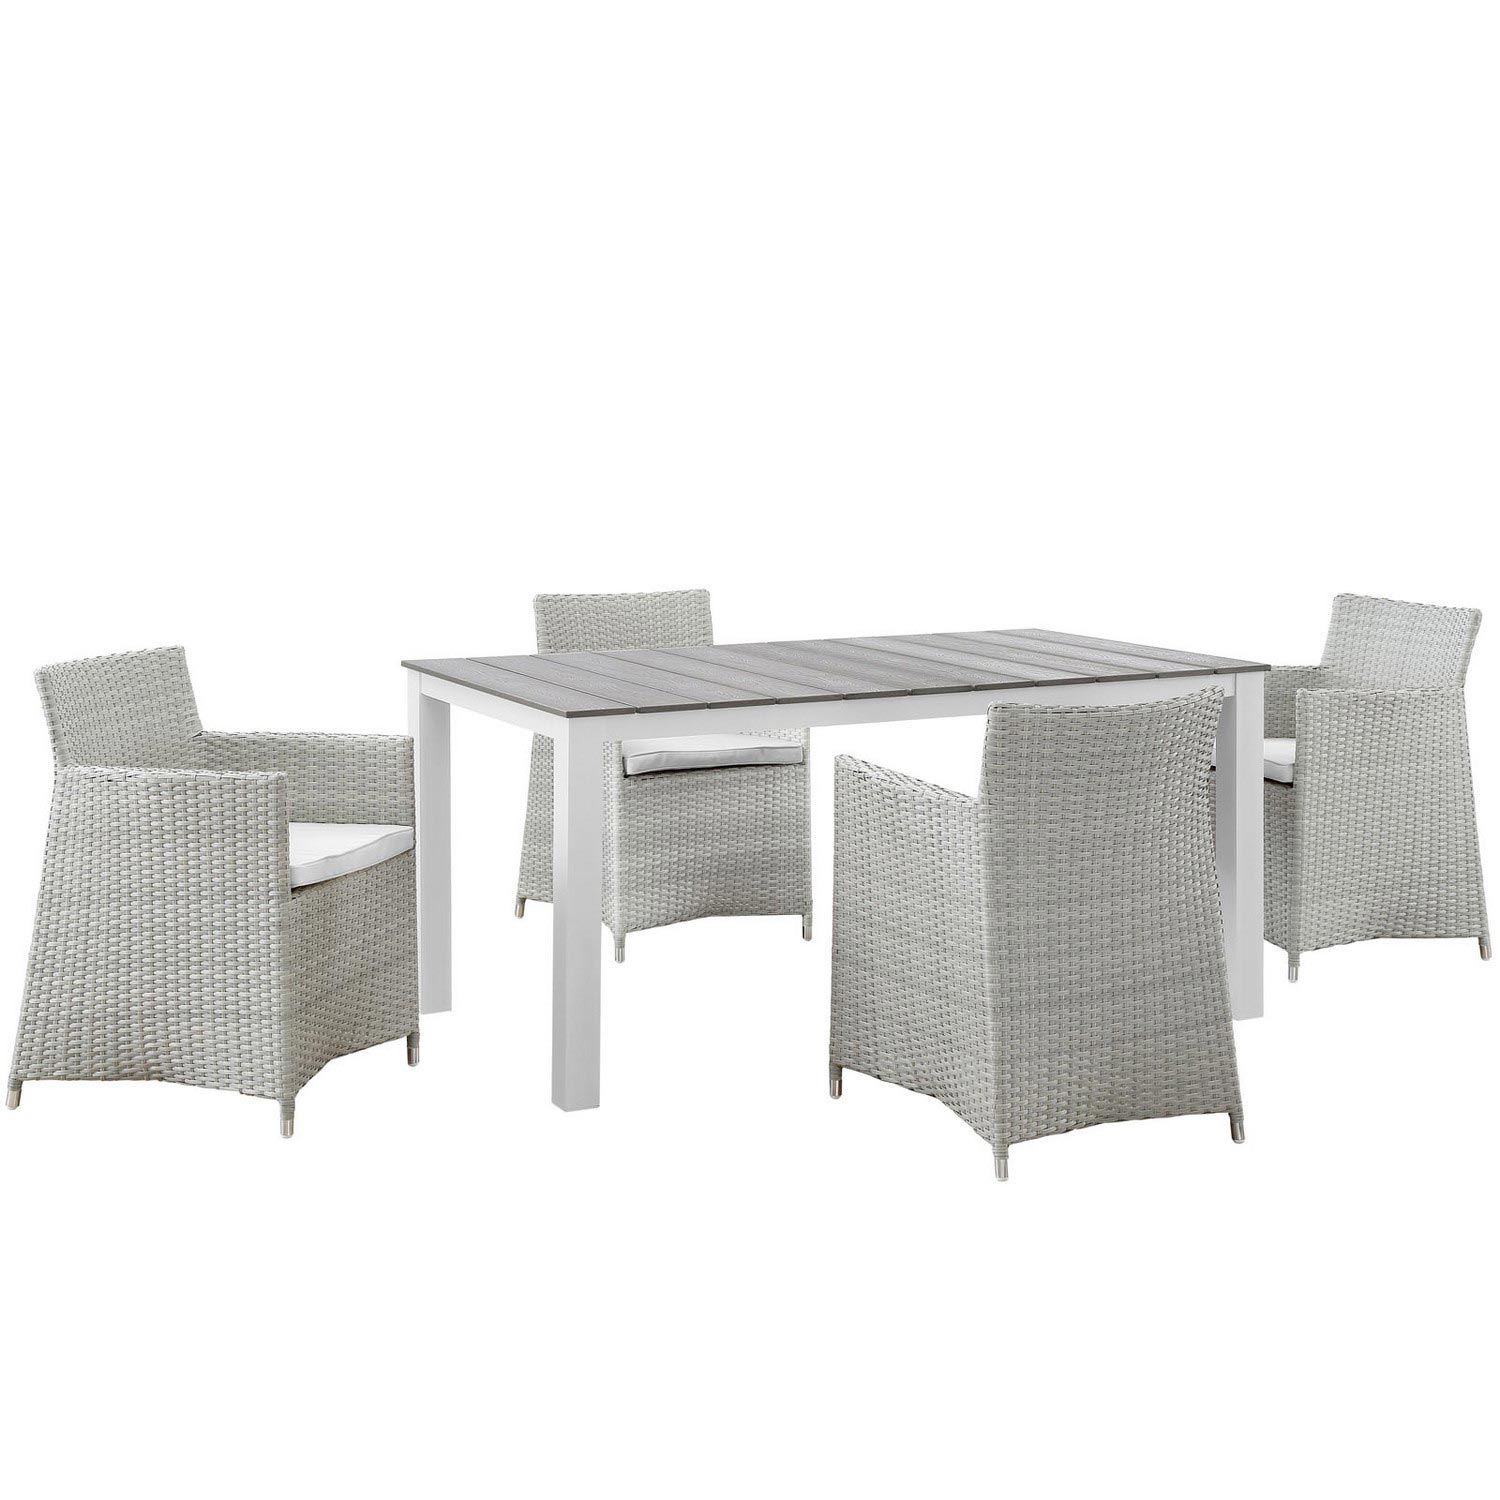 Modway Junction 5 Piece Outdoor Patio Dining Set - Gray/White